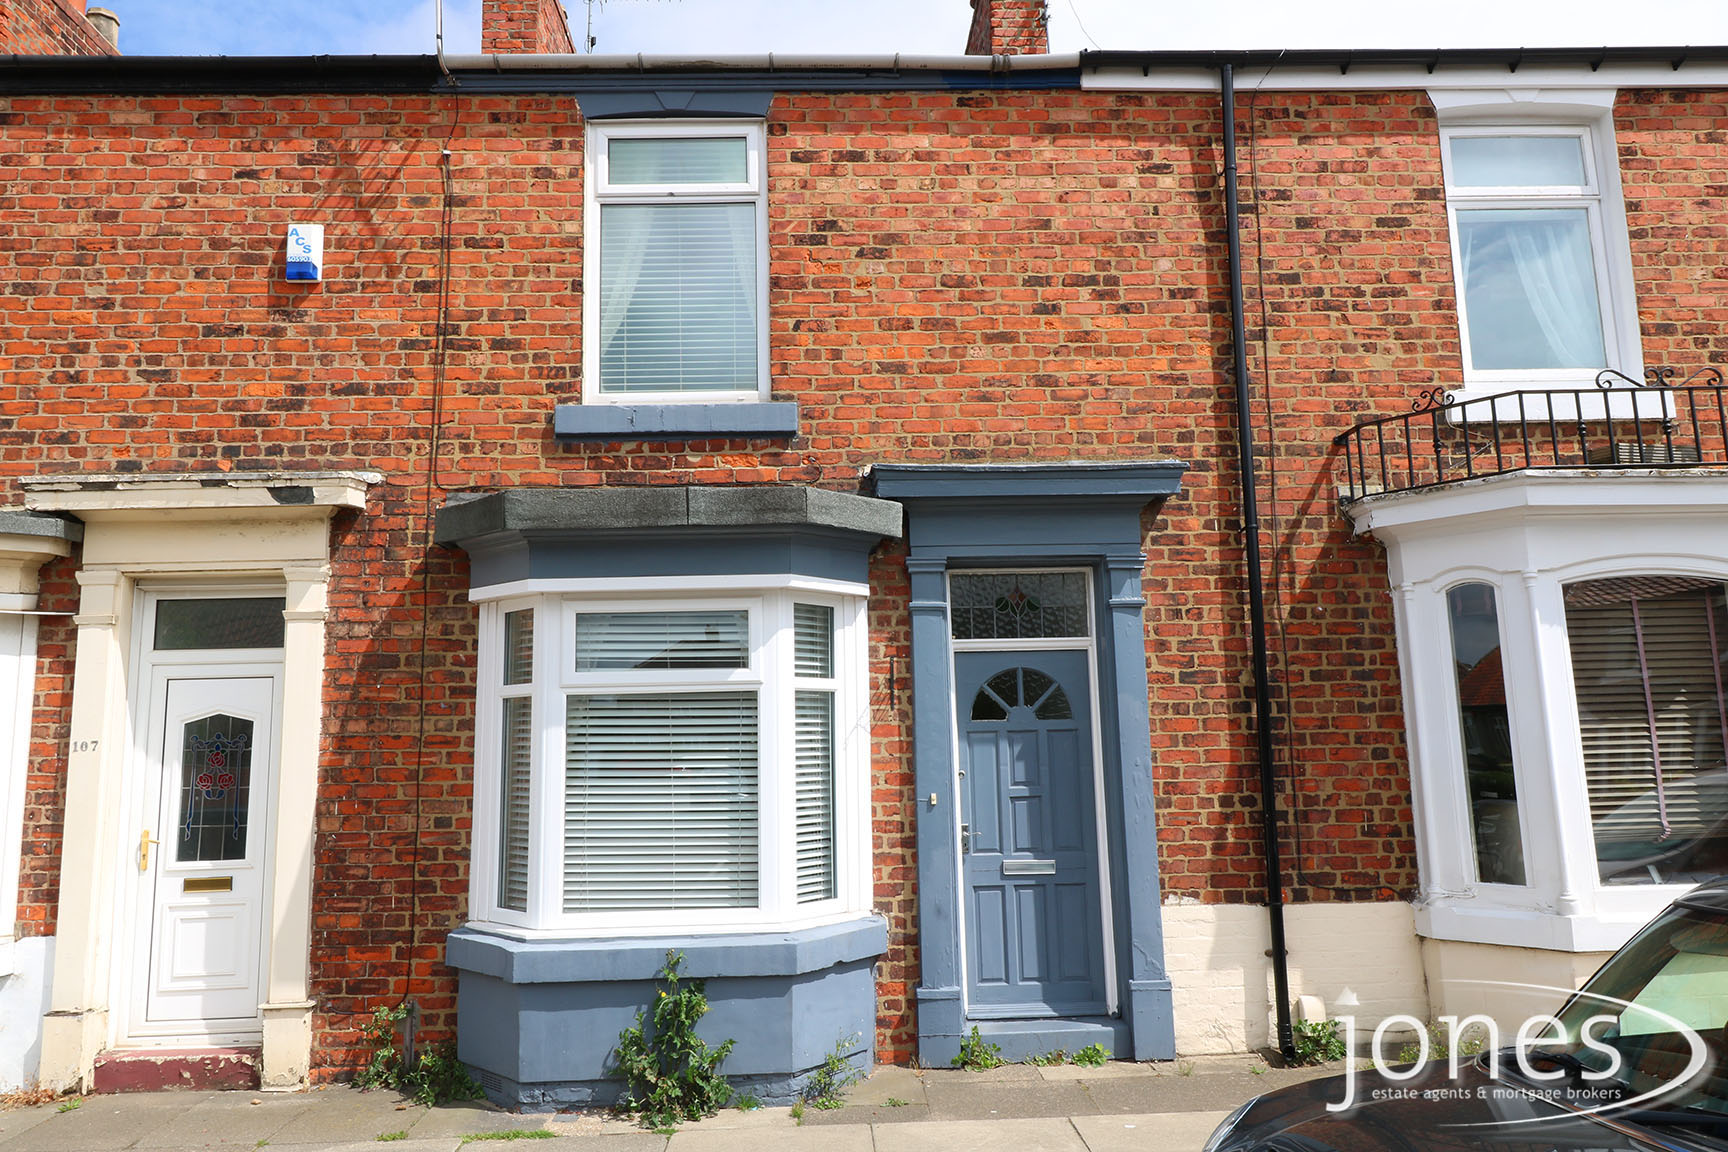 Home for Sale Let - Photo 01 Station Road Norton Stockton on Tees TS20 1PE